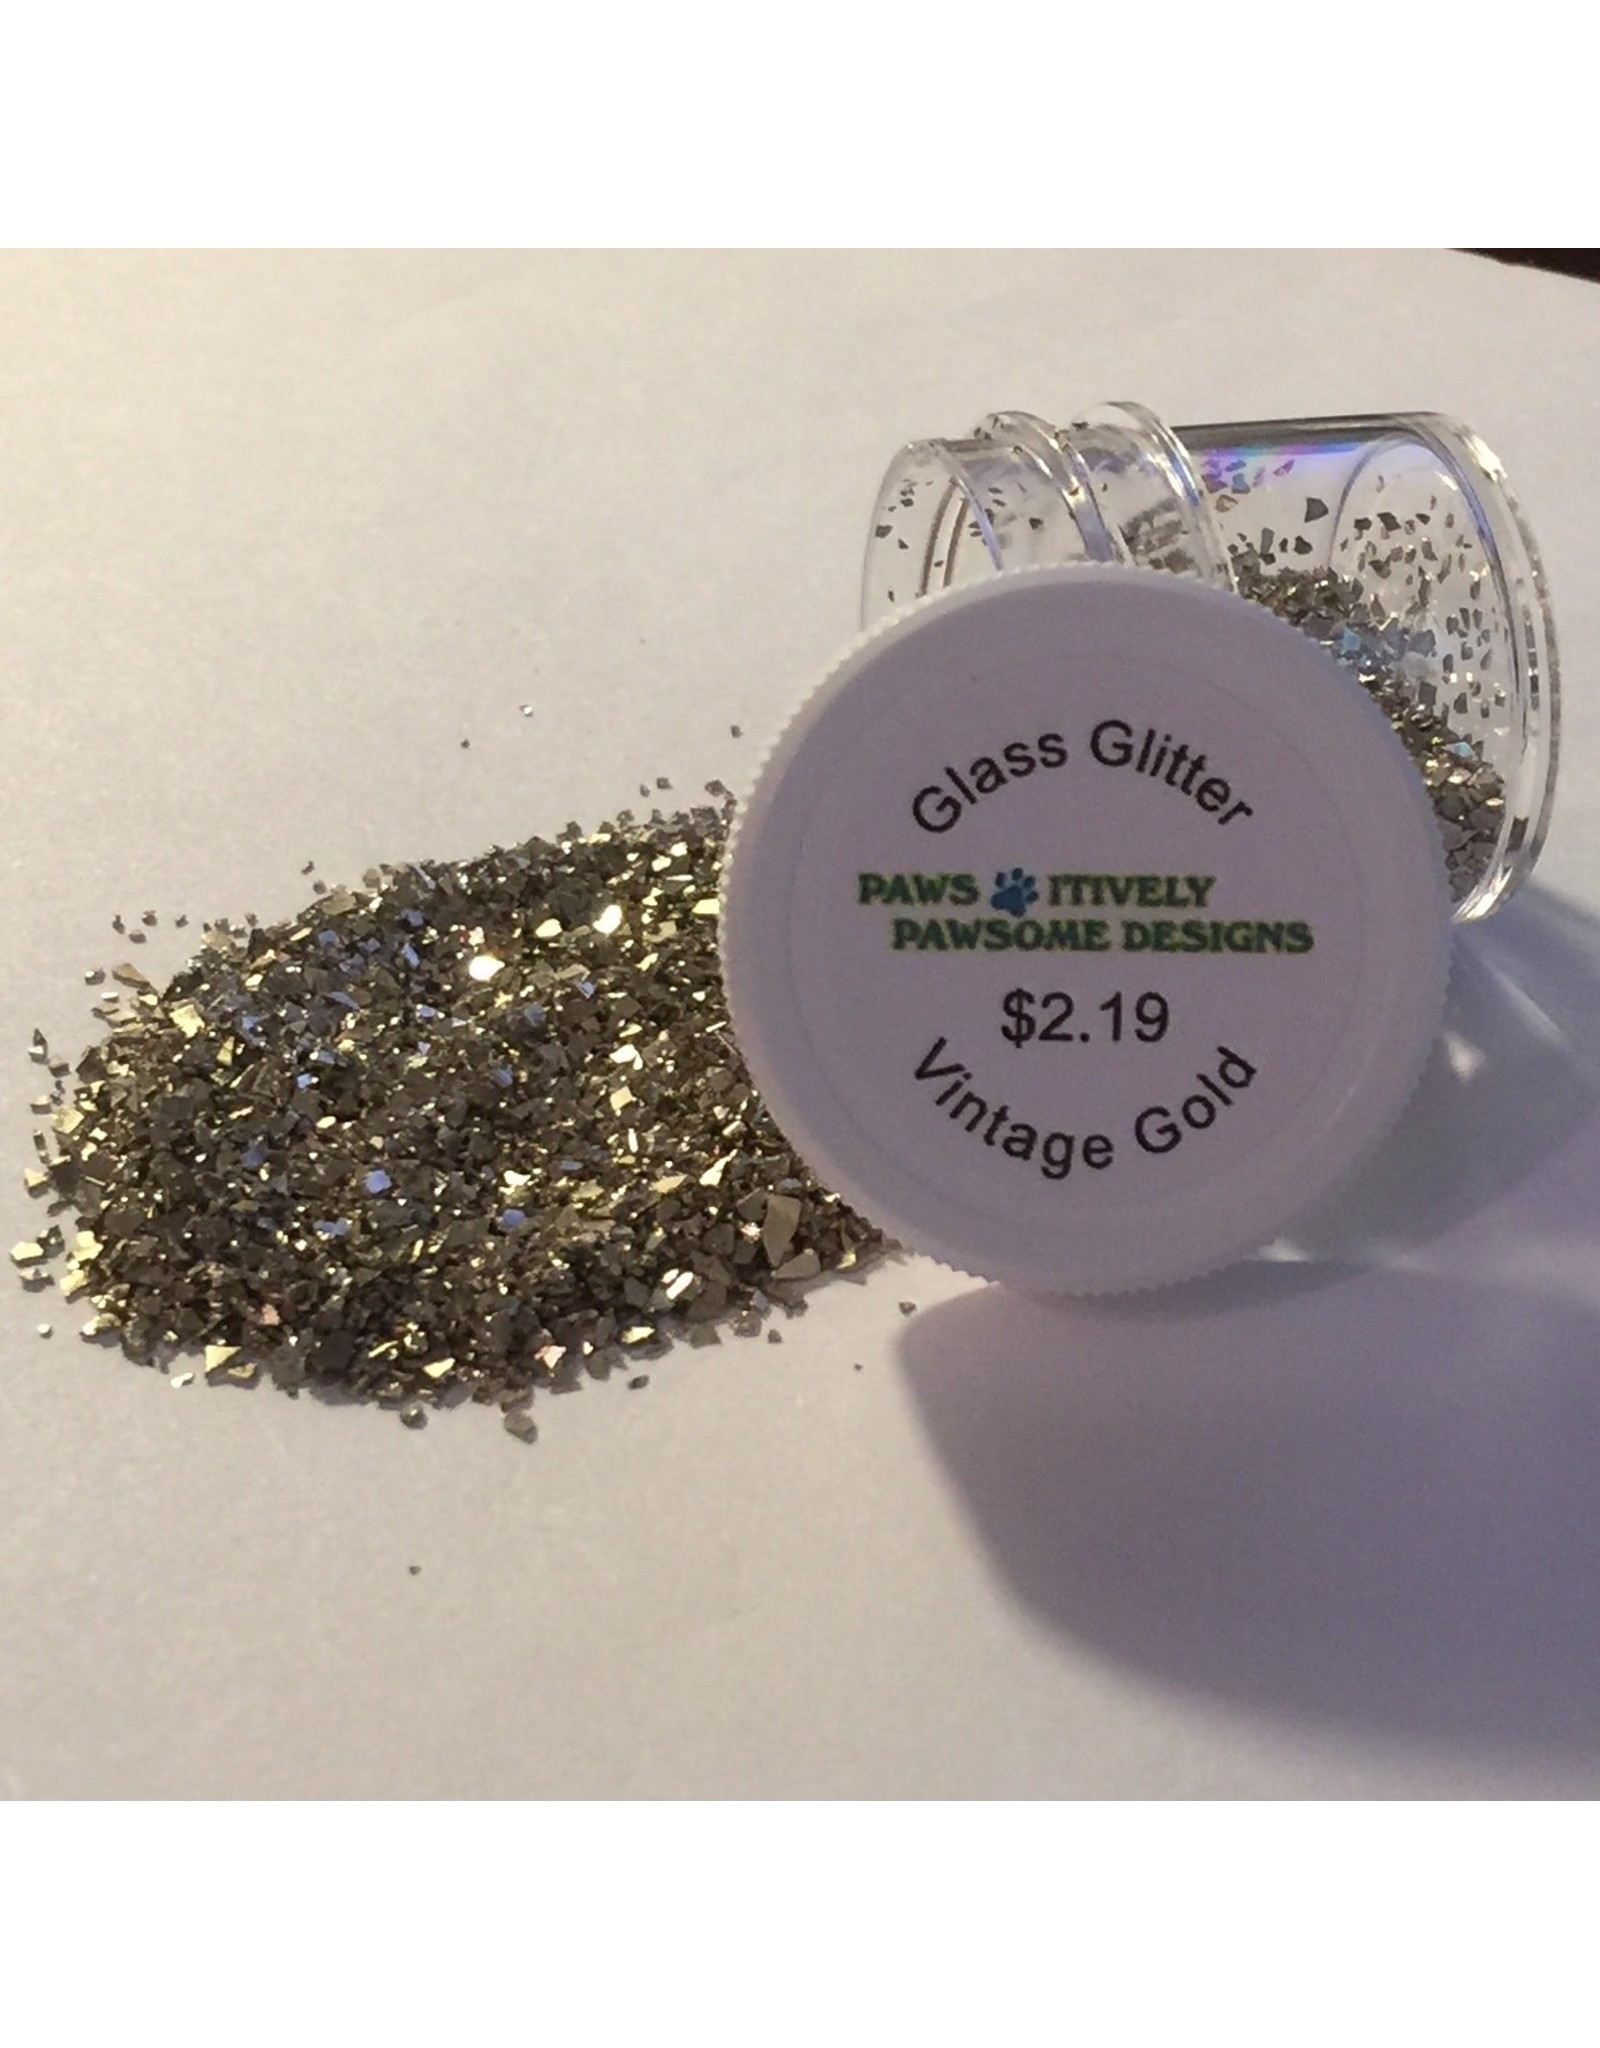 Paws-Itively Pawsome Designs Glass Glitter - Vintage Gold